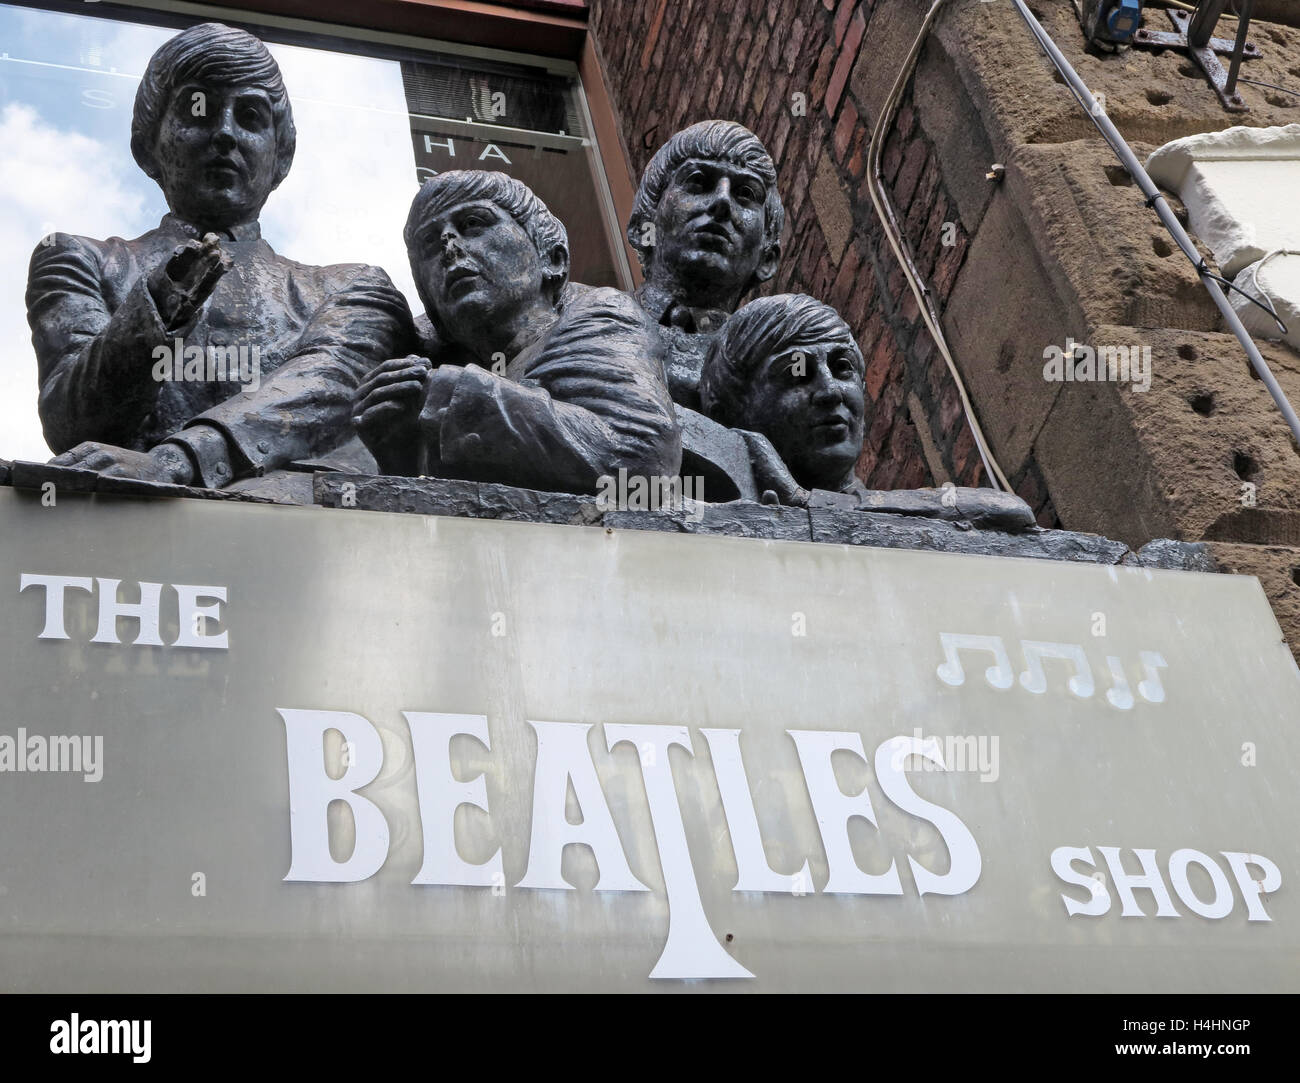 Merseyside,England,Matthew,St,Street,sign,statue,statues,FabFour,Fab,Four,shop,shopping,Mersey,side,music,beat,retail,tourism,tourist,local,landmark,cavern,club,bar,pub,john,paul,ringo,George,Beatles,shop,store,Cavern walks,Mathew Street,Matthew Street,local Landmark,Beatles Shop,GoTonySmith,@HotpixUK,Tony,Smith,UK,GB,Great,Britain,United,Kingdom,English,British,England,L2,6RE,Buy Pictures of,Buy Images Of,Images of,Stock Images,Tony Smith,United Kingdom,Great Britain,British Isles,L2 6RE